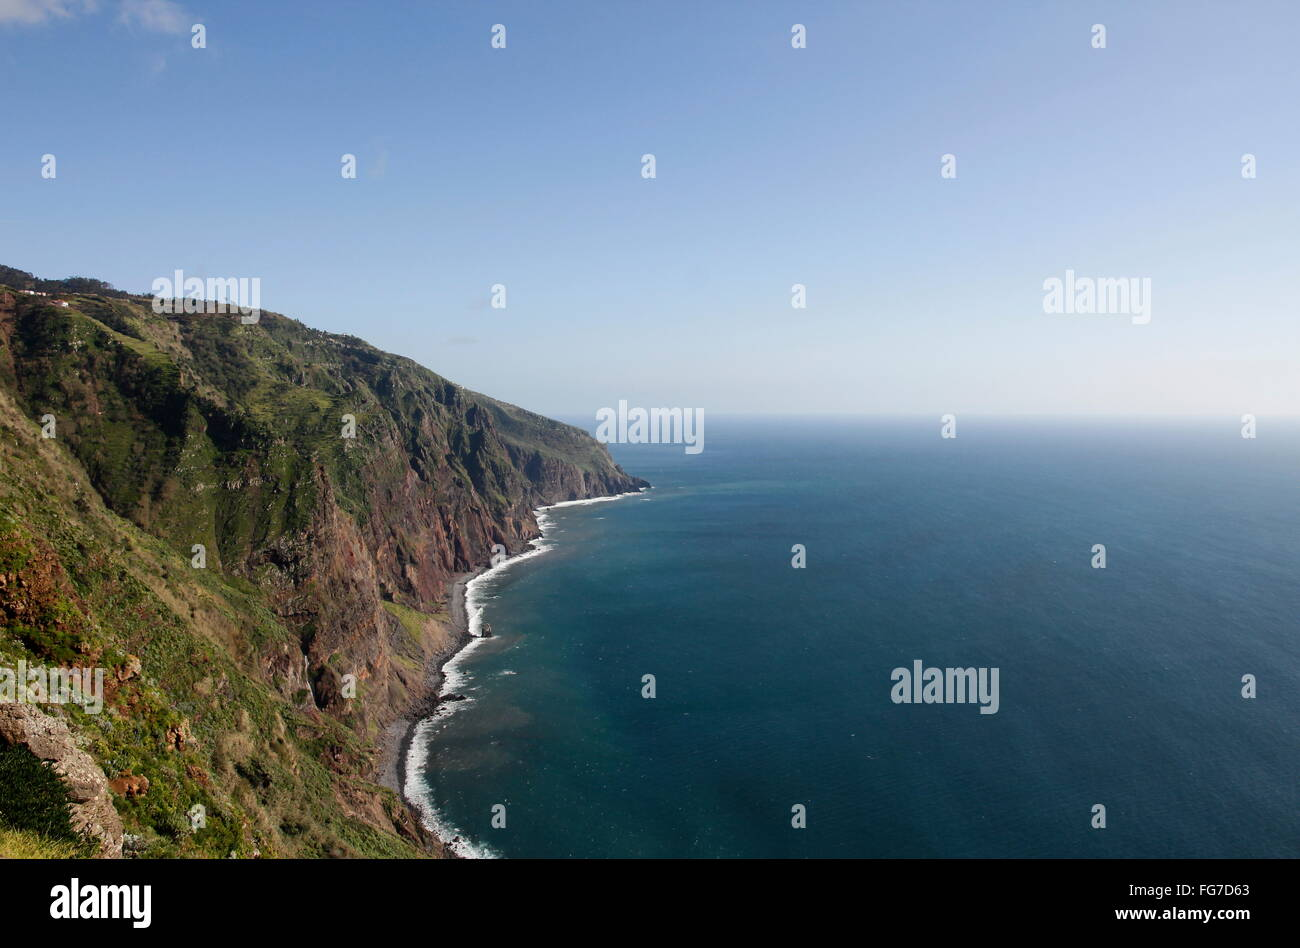 geography / travel, Portugal, Madeira, Ponta do Pargo, Atlantic Ocean, steep coast, Additional-Rights-Clearance - Stock Image